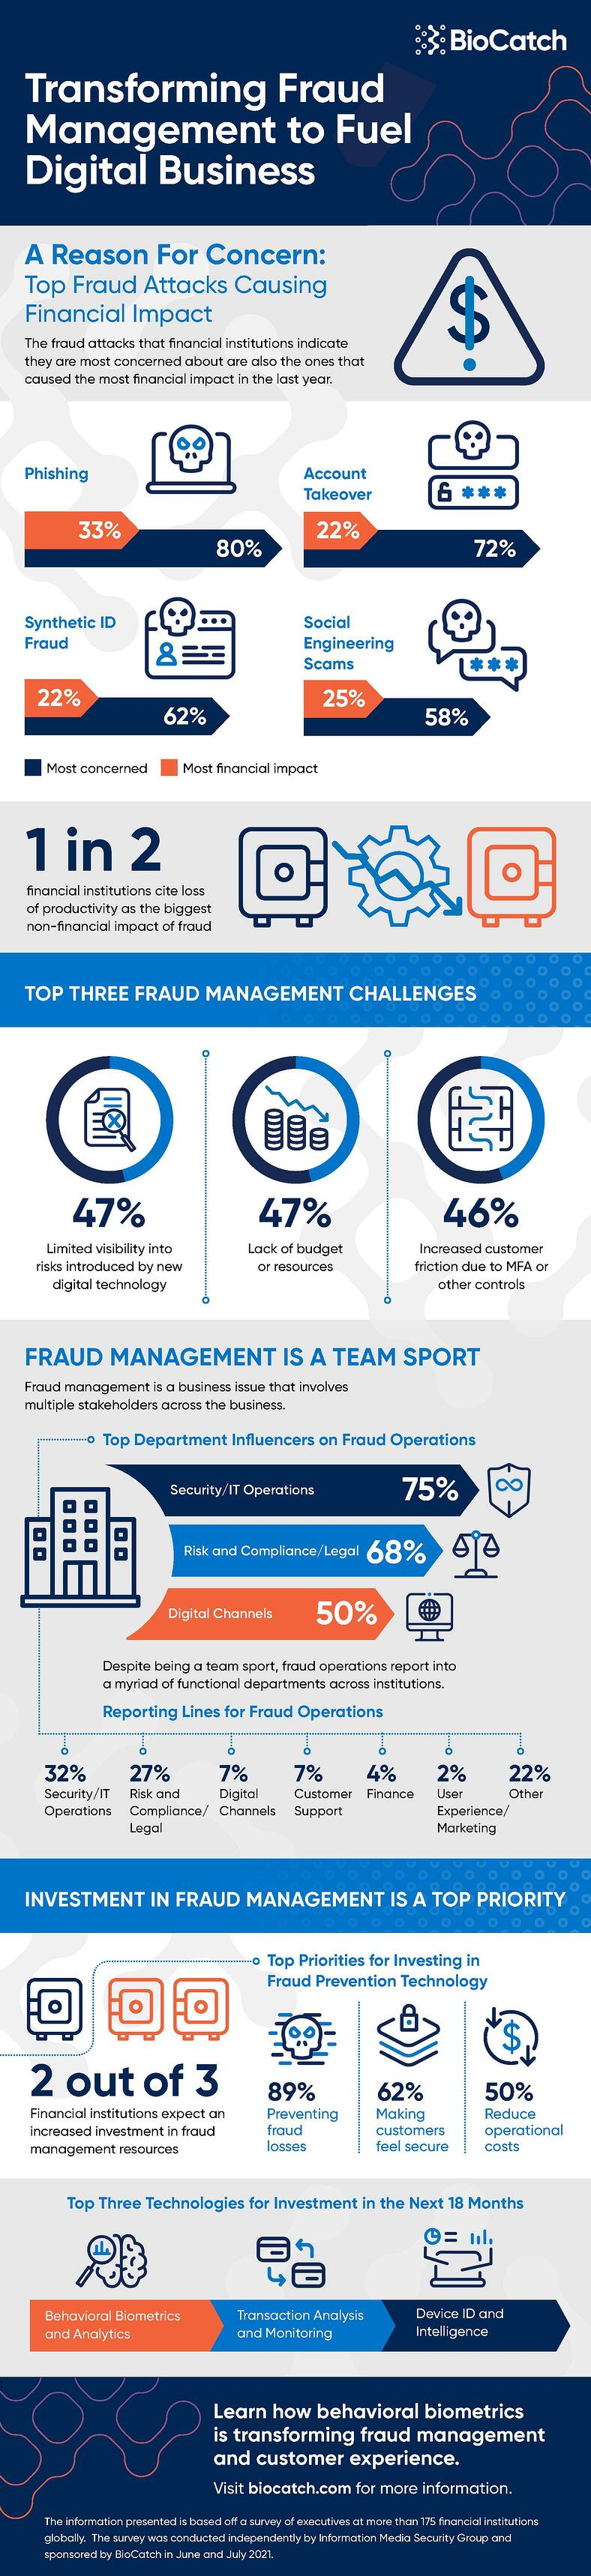 Infographic-Transforming-Fraud-Management (1)